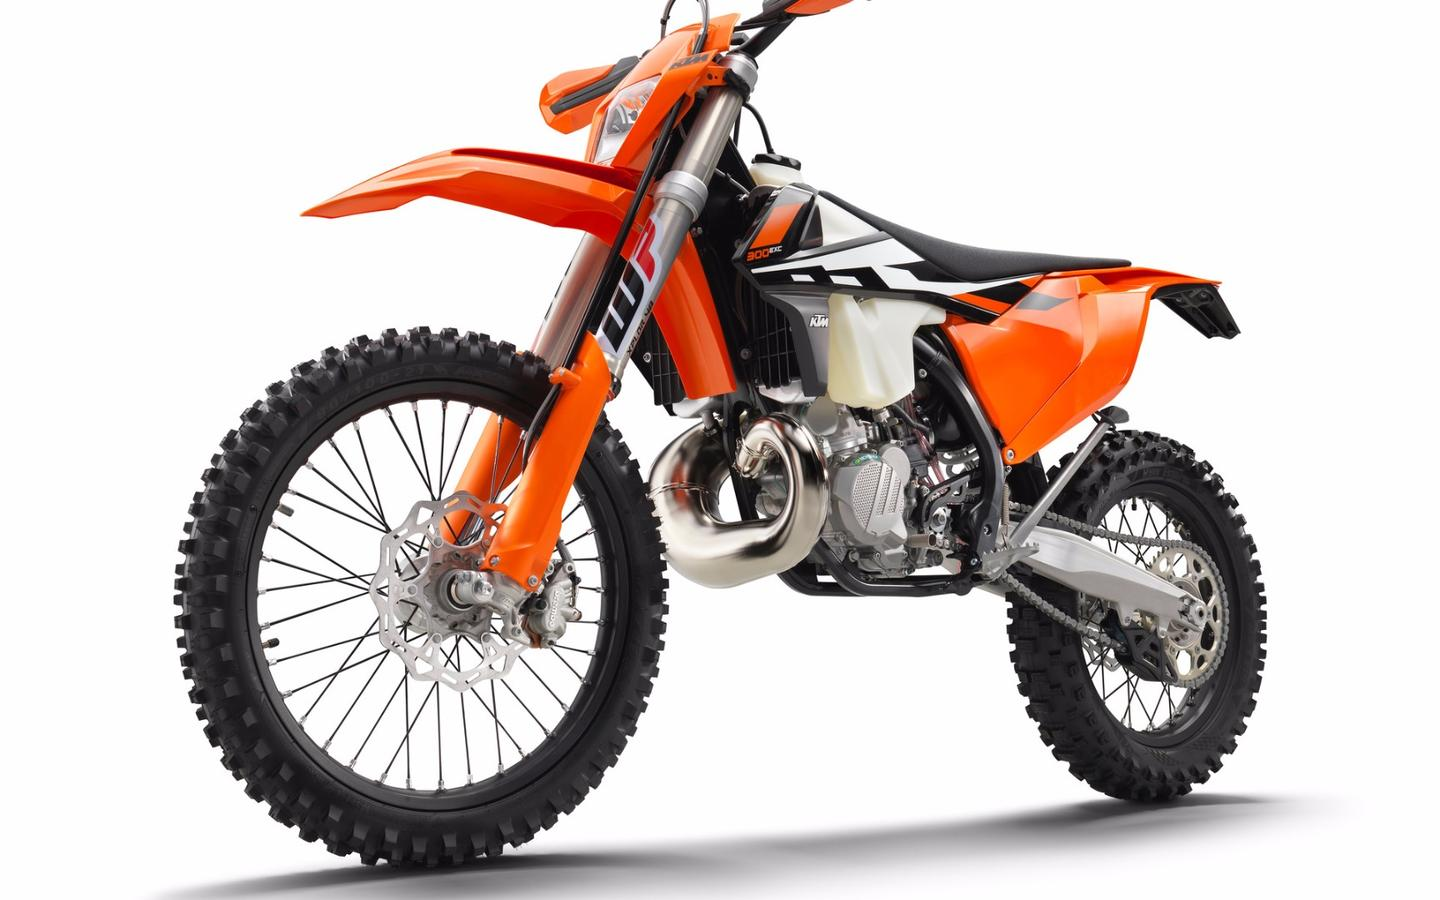 Current KTM two-strokes, like the 300 EXC, rely ongood old tech - Reed valves and Mikuni carbs - that will find it very hard to survive under stricter Euro 4 emissions rules